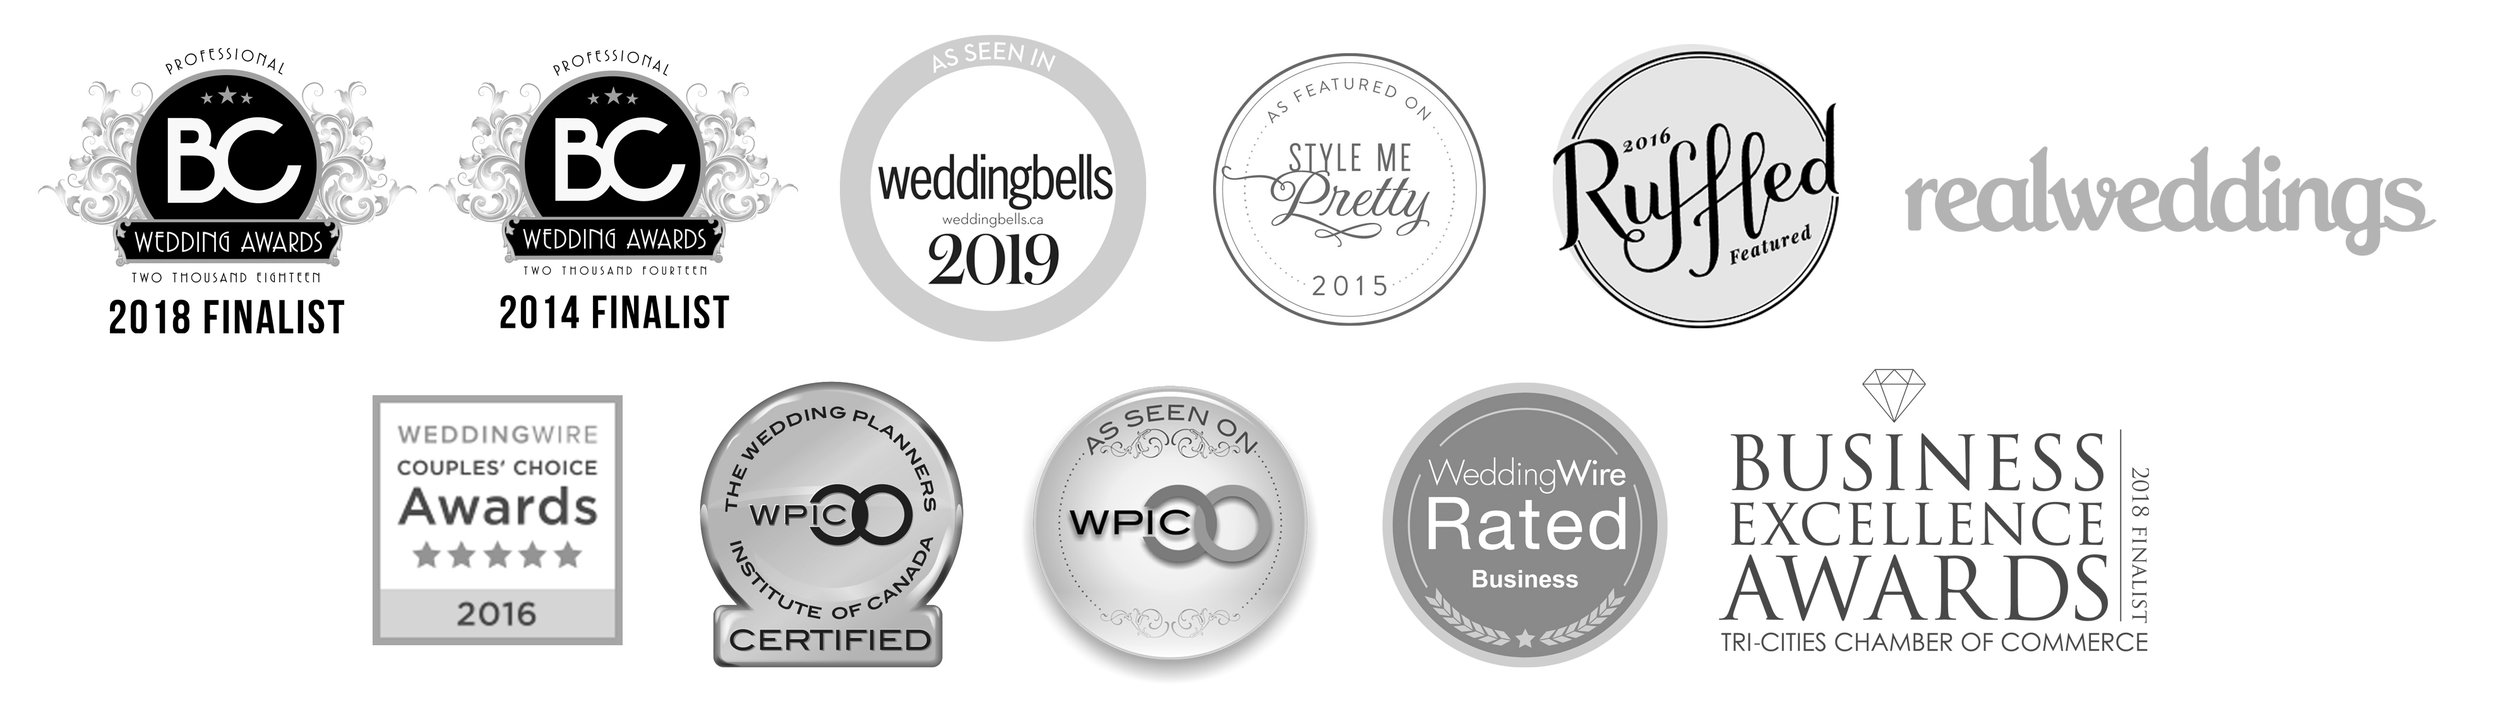 Badges2019-v2-b&w.jpg